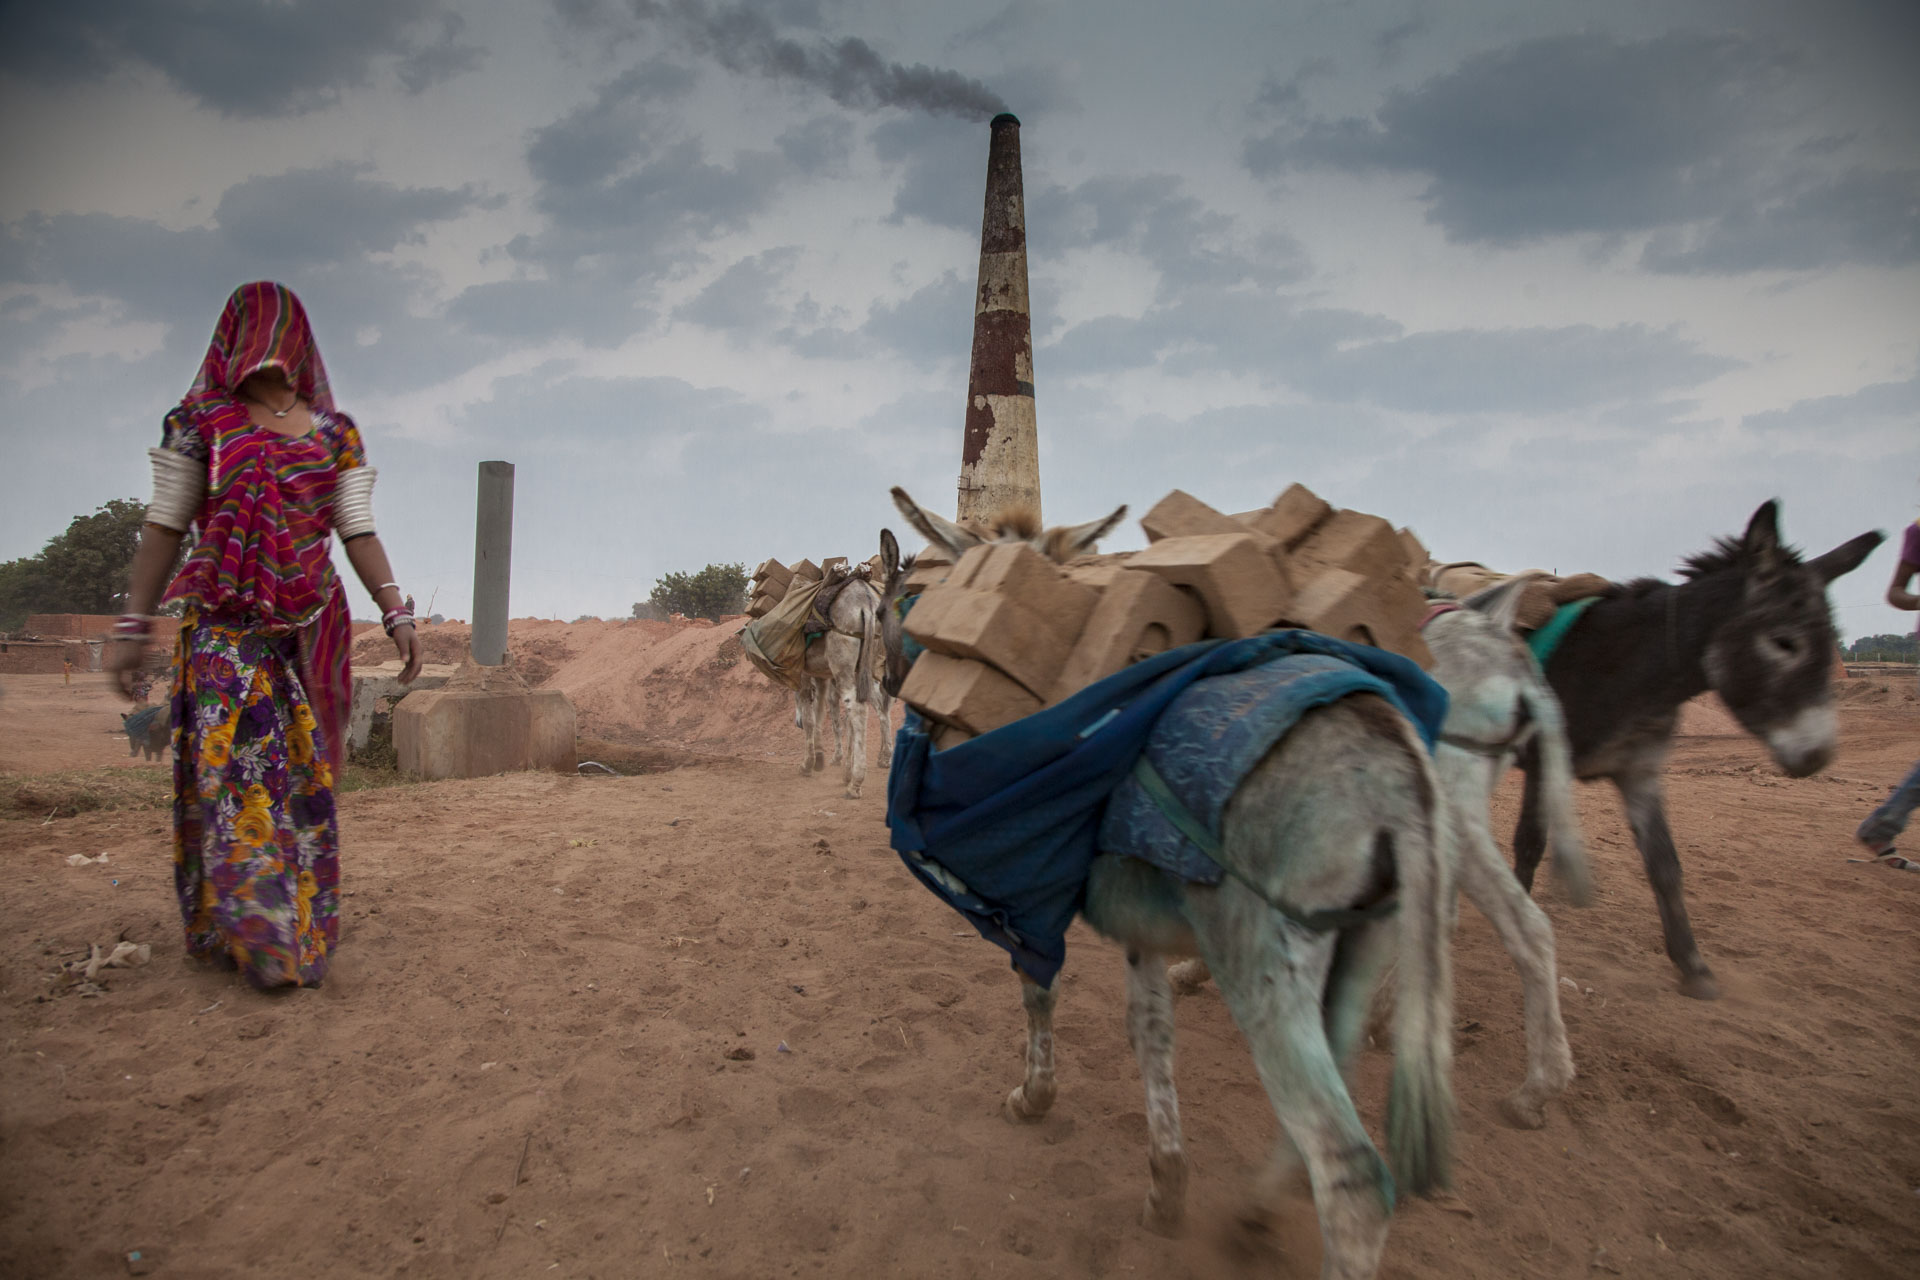 Donkeys work in Indian brick kilns. © Crispin Hughes